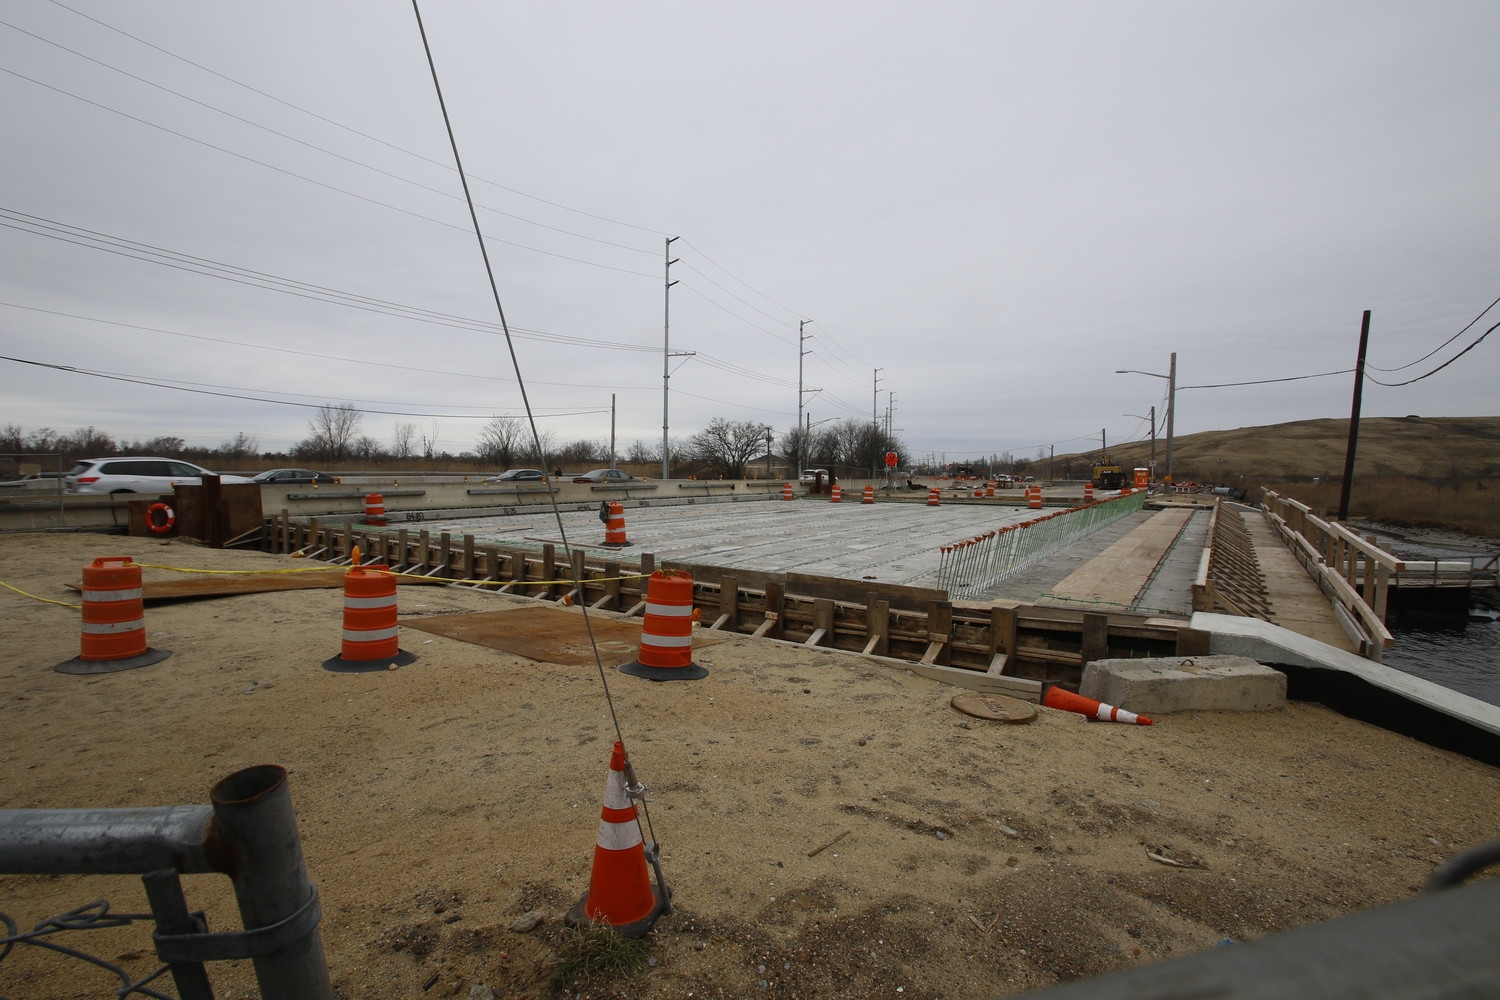 Construction on the Barnum Island Bridge was paused because the county missed its window to pour concrete on the northbound side of the span before the winter months. County officials gave a number of reasons for the delay.